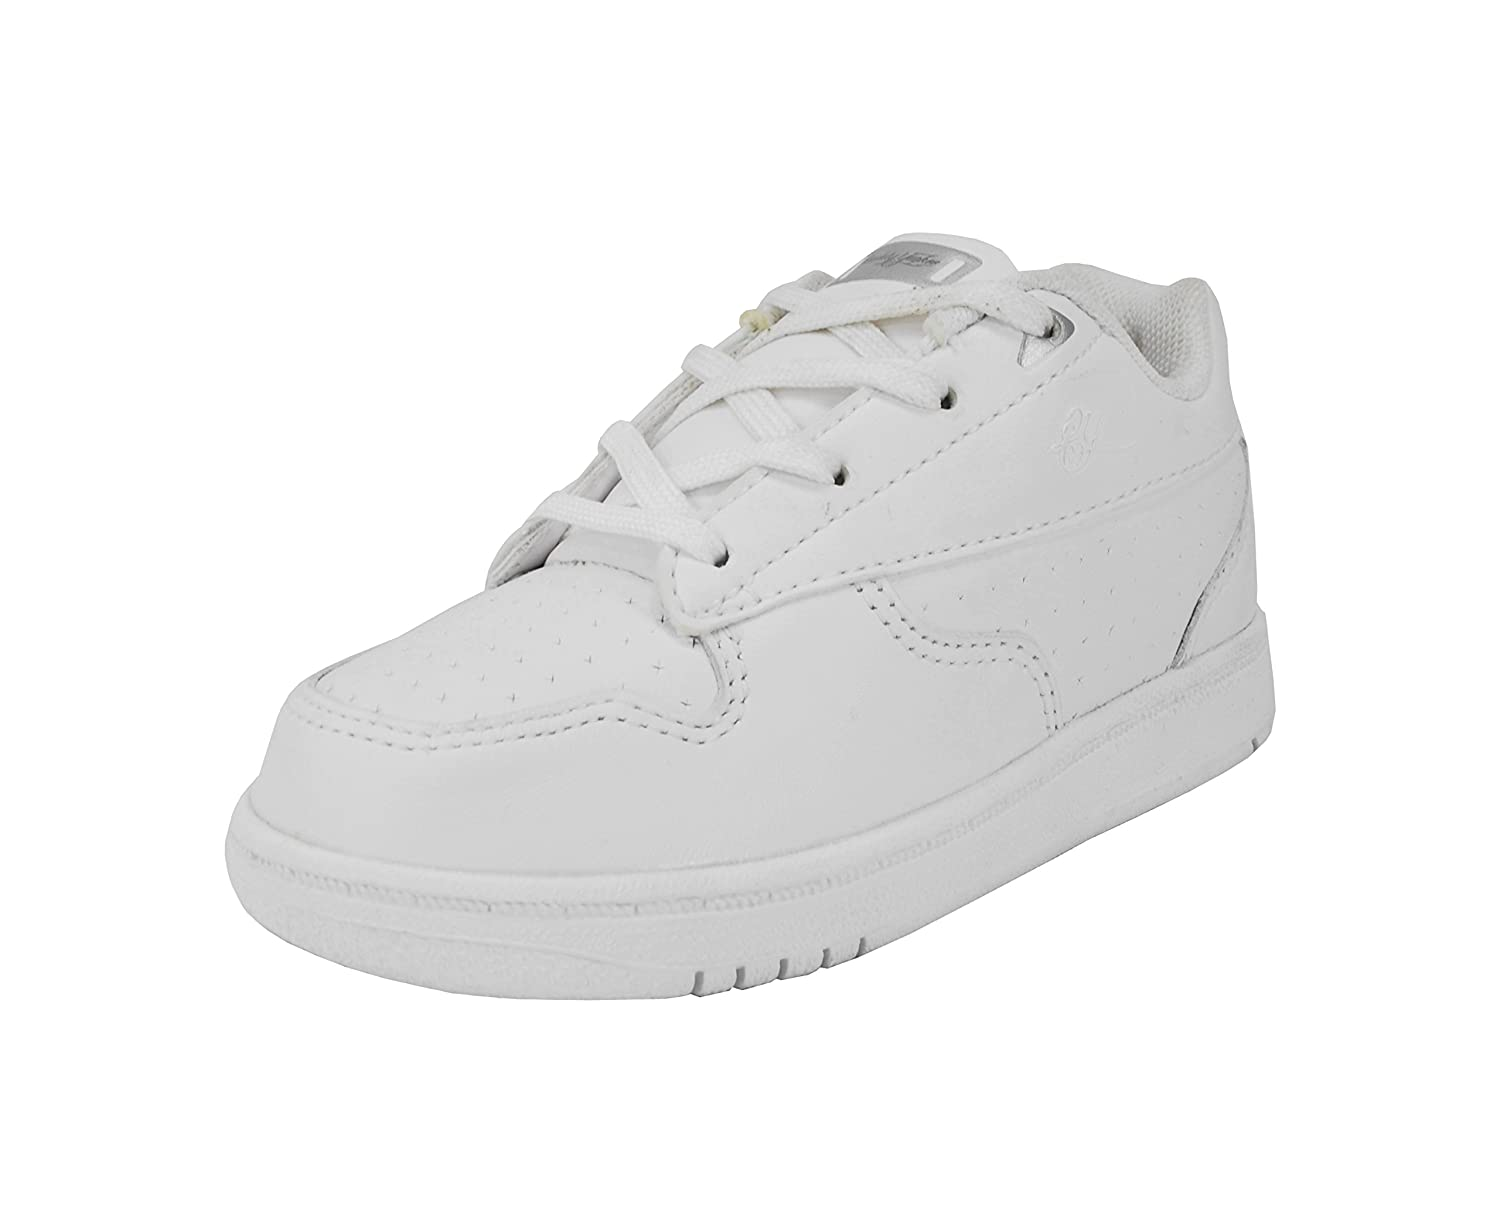 a2527ef74b3e Amazon.com  Reebok Infant Toddler Shoes 83 Daddy Yankee White Sneakers  (5.5)  Shoes